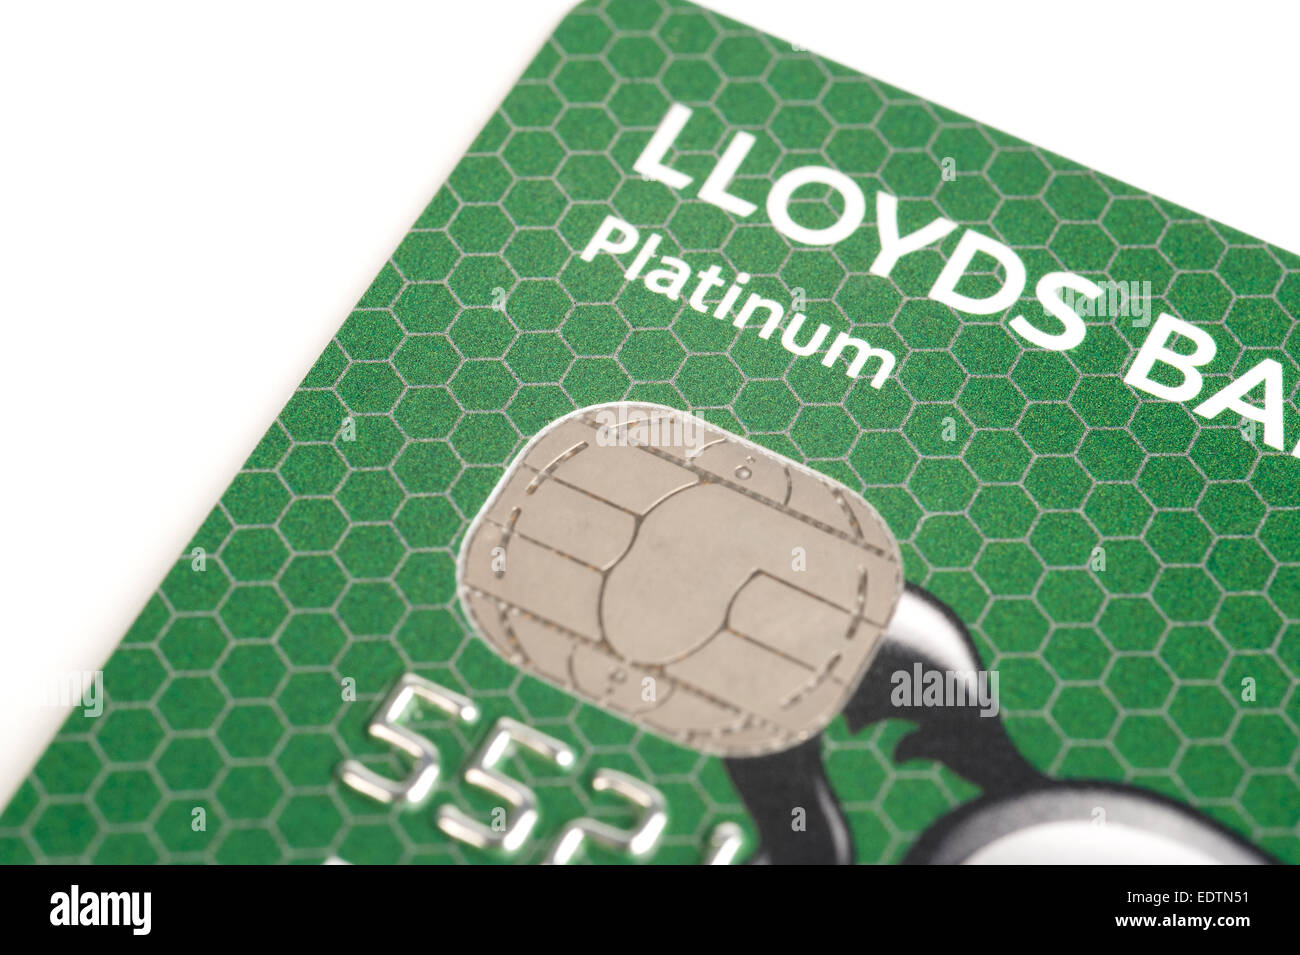 Lloyds bank card stock photos lloyds bank card stock images alamy lloyds bank integrated circuit card icc chip credit card detail stock image magicingreecefo Image collections